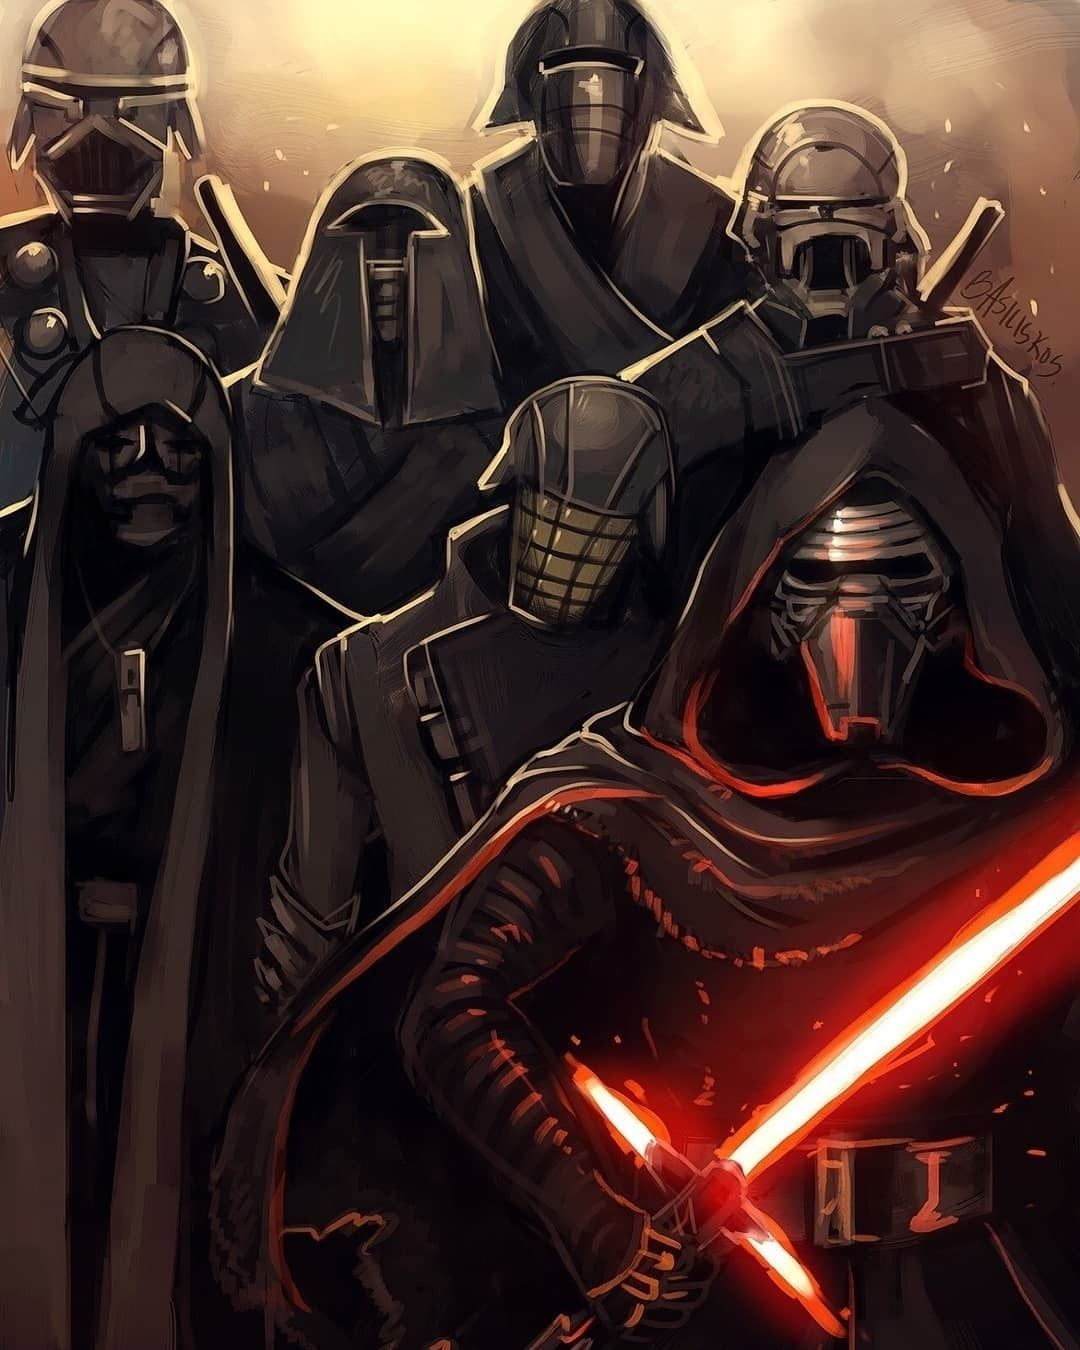 Will We See The Knights Of Ren In Episode 9 Art By